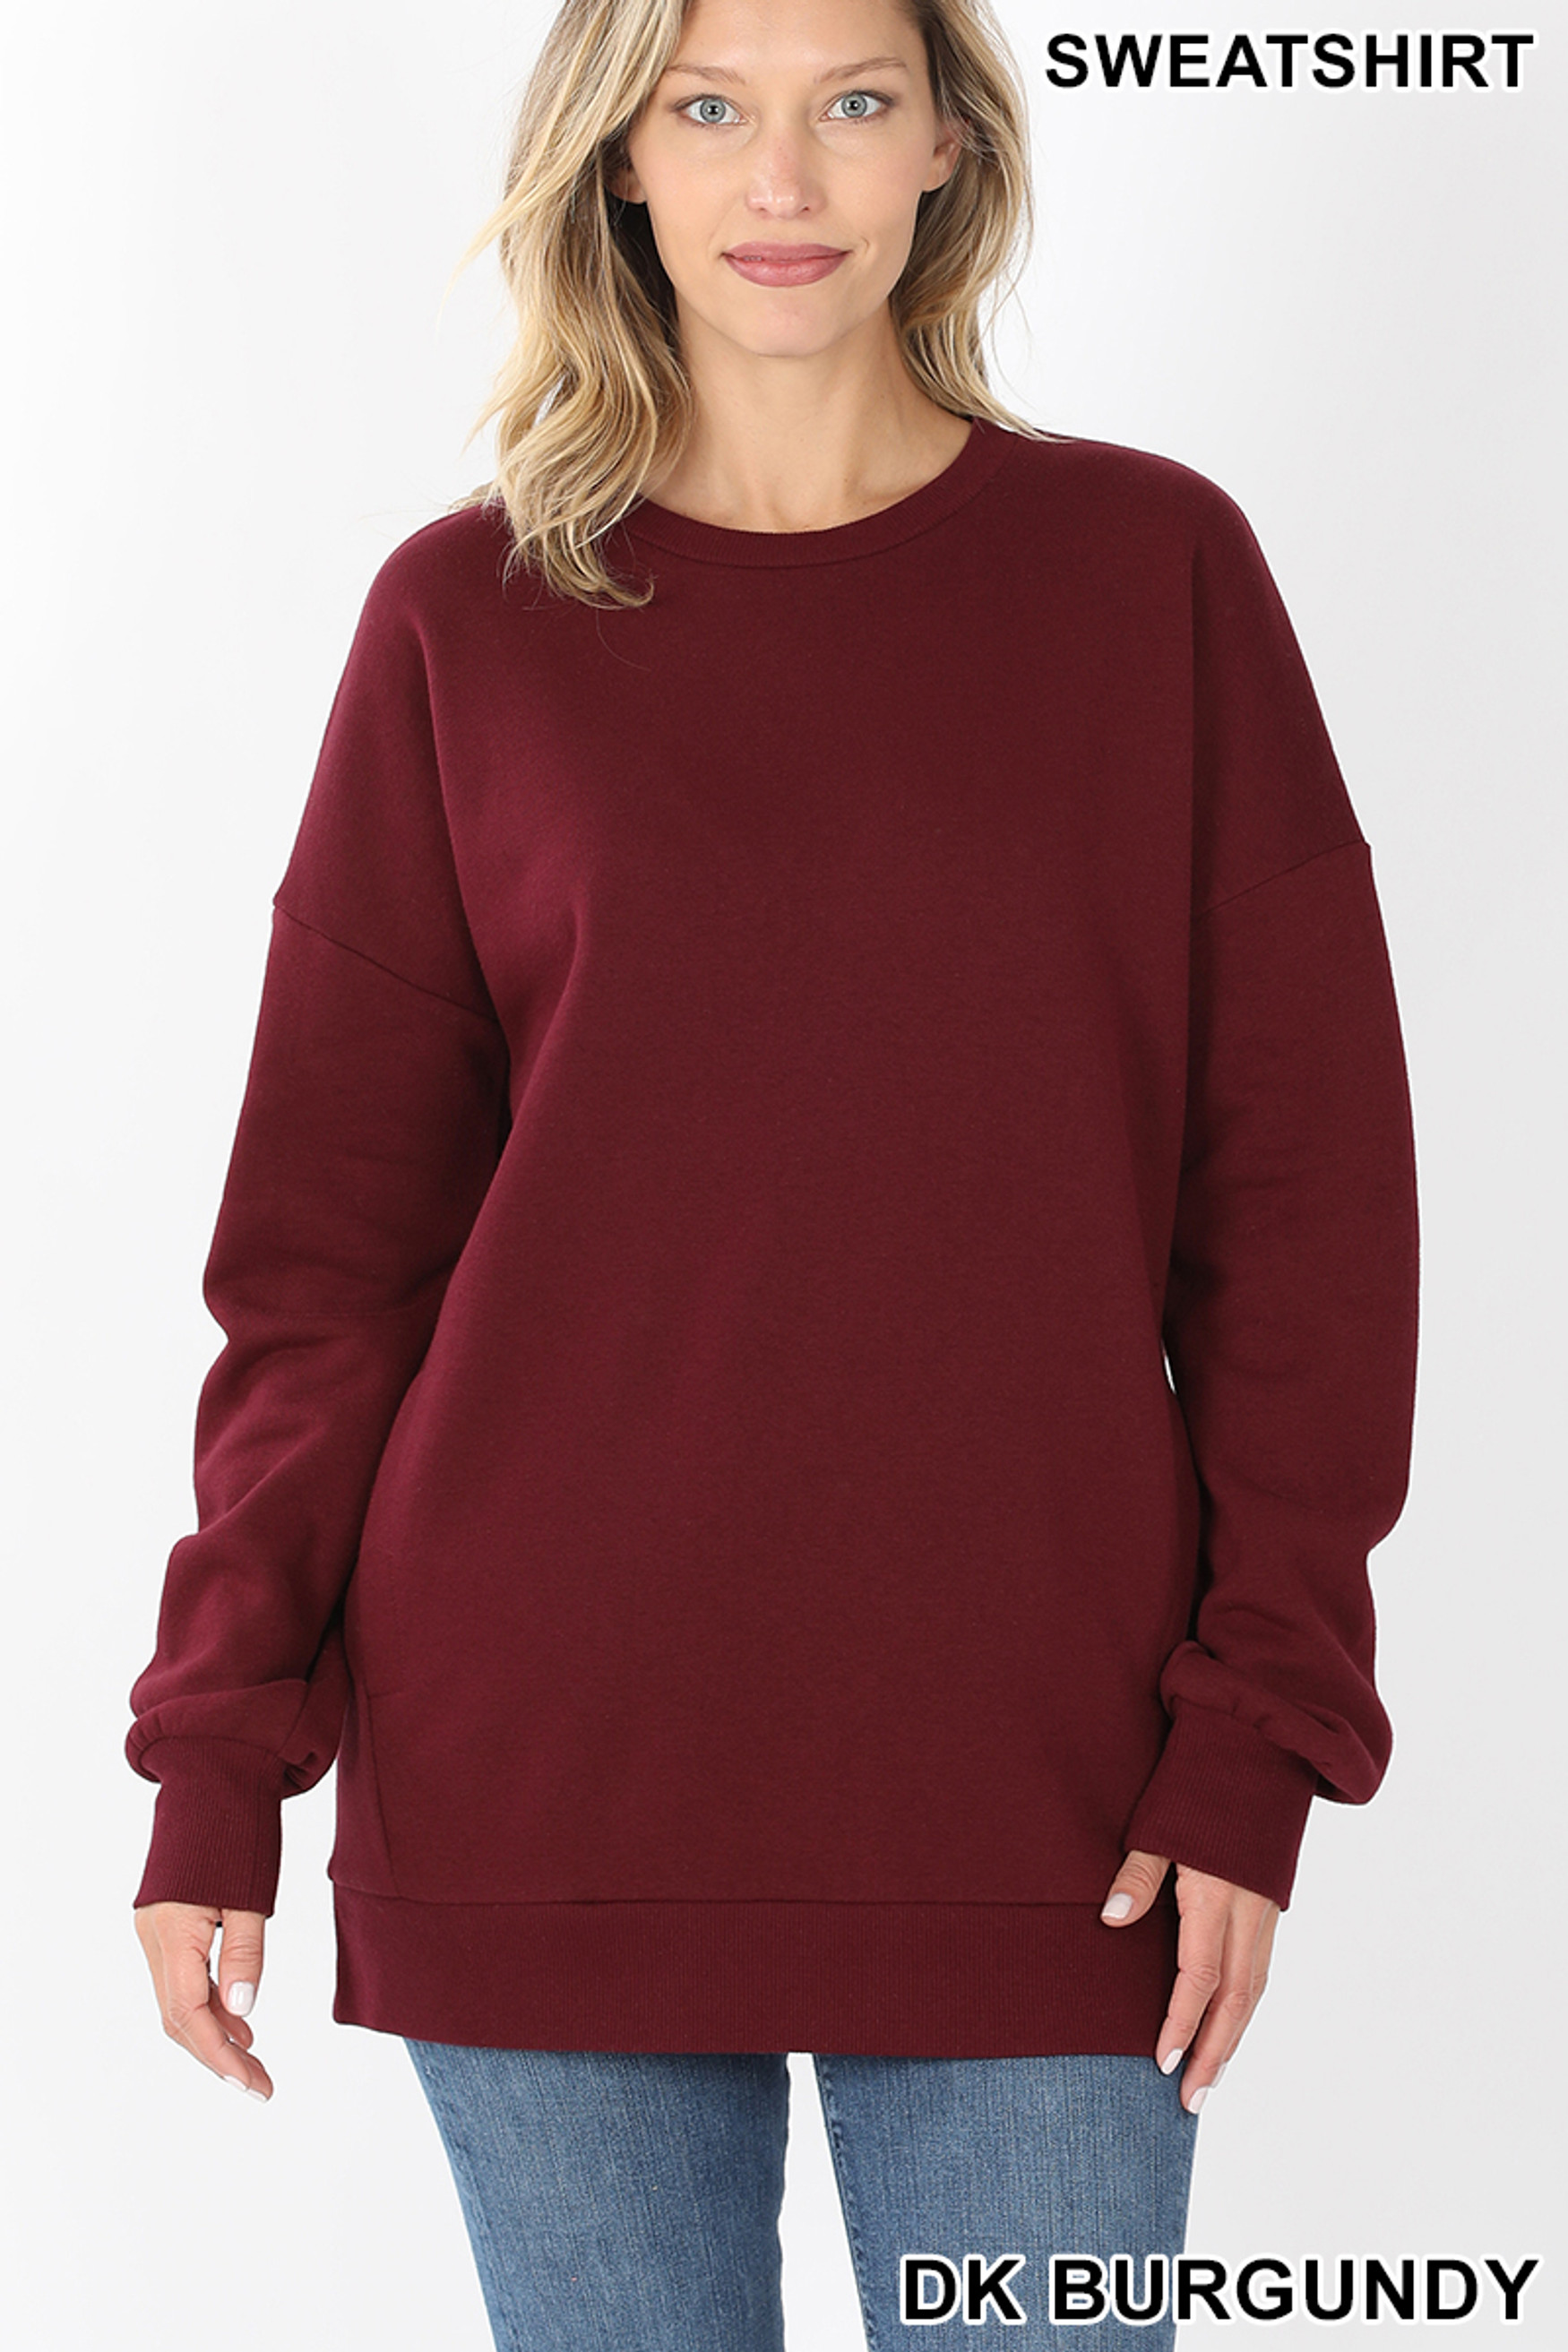 Front image of Dark Burgundy Round Crew Neck Sweatshirt with Side Pockets